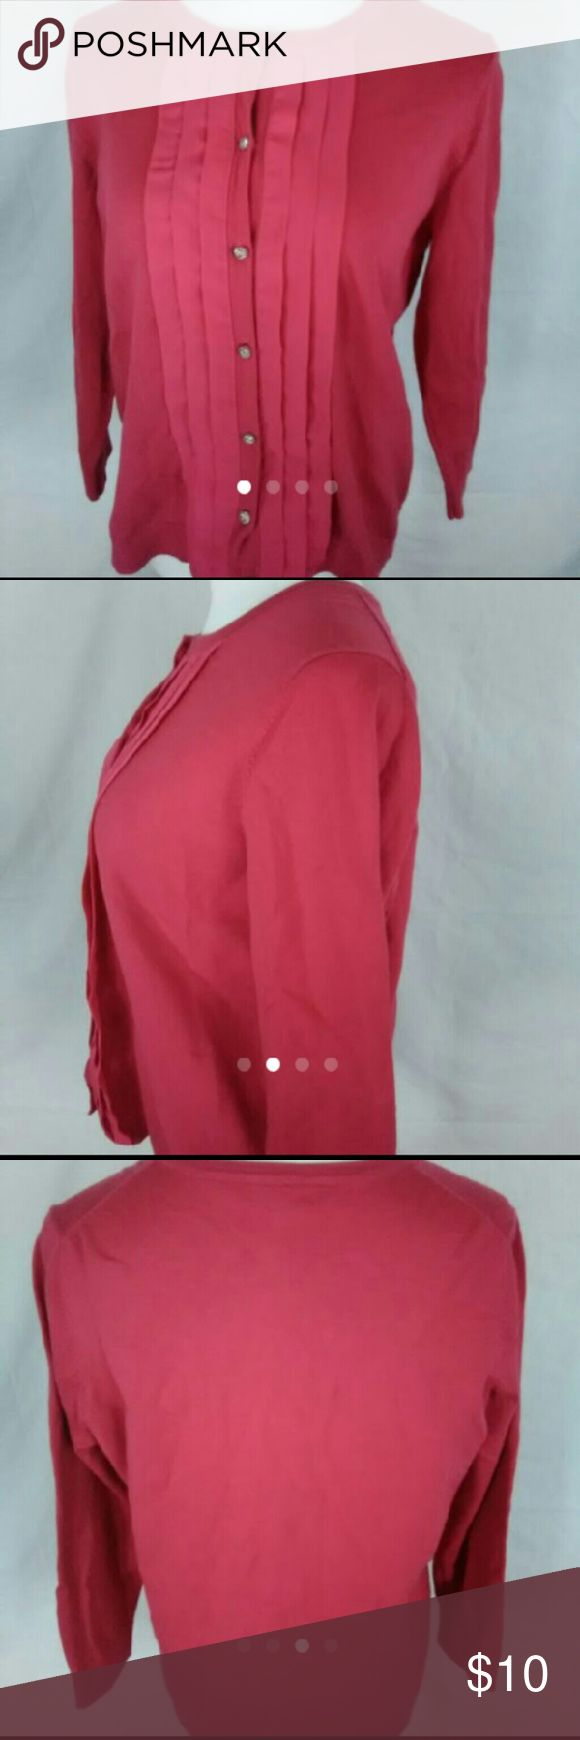 Charter club pink cardigan sweater size XL Measurements  Armpit to armpit 21in Length 24in Charter Club Tops Button Down Shirts